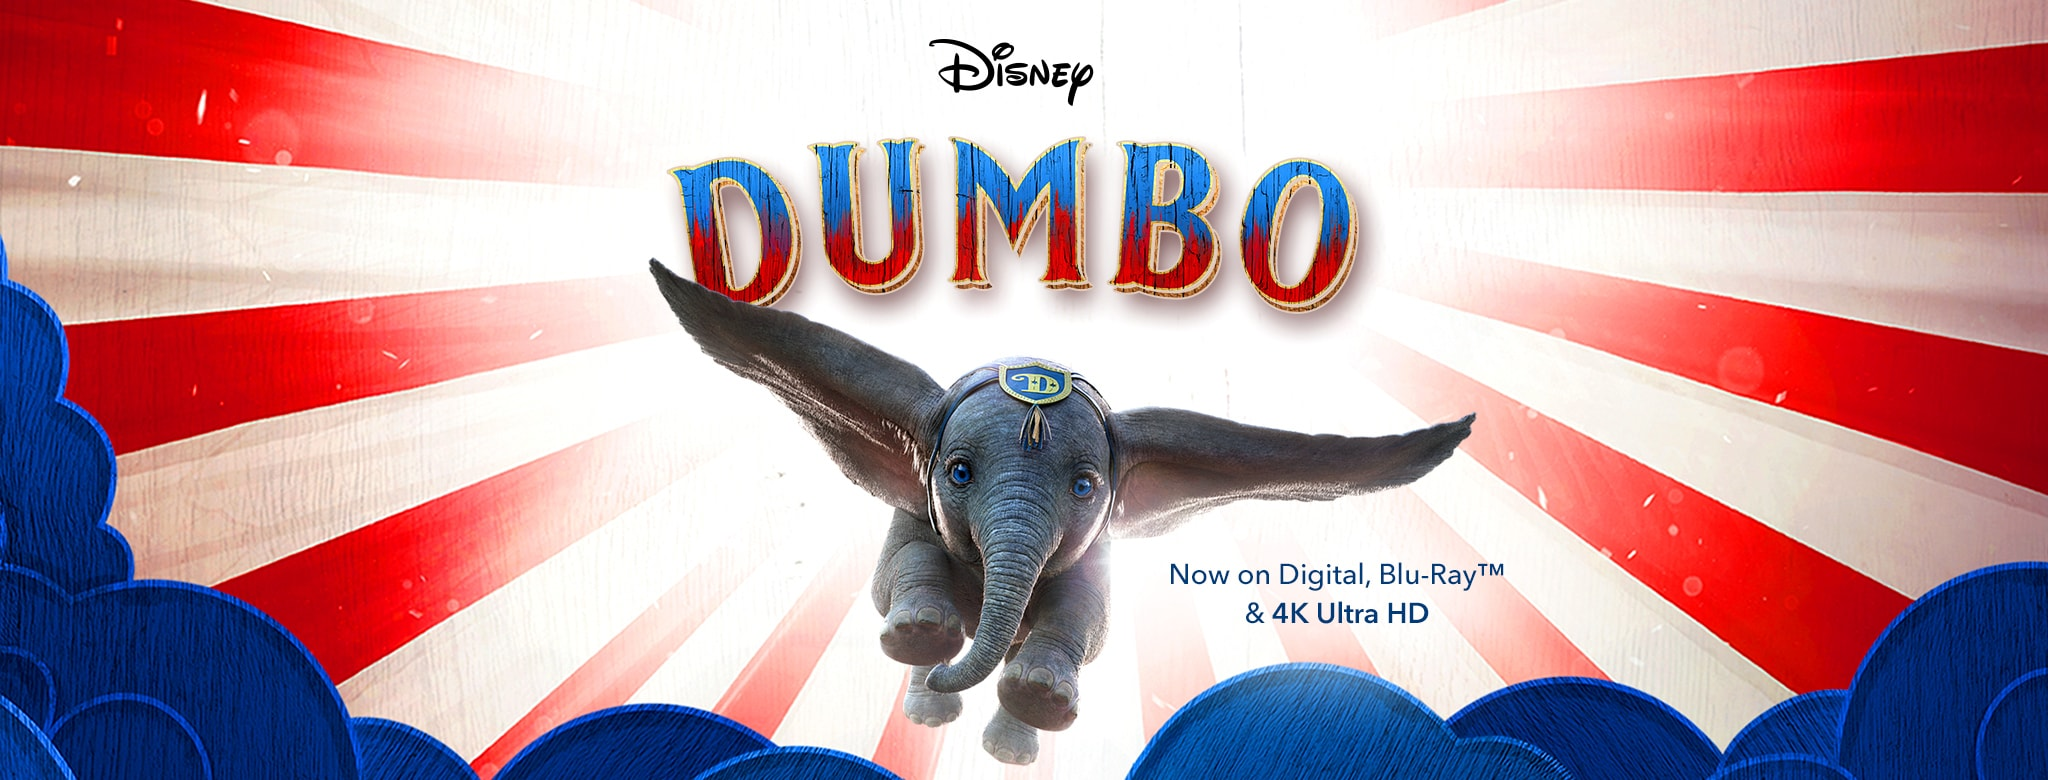 Disney Dumbo - Now On Digital, Blu-Ray and 4K Ultra HD